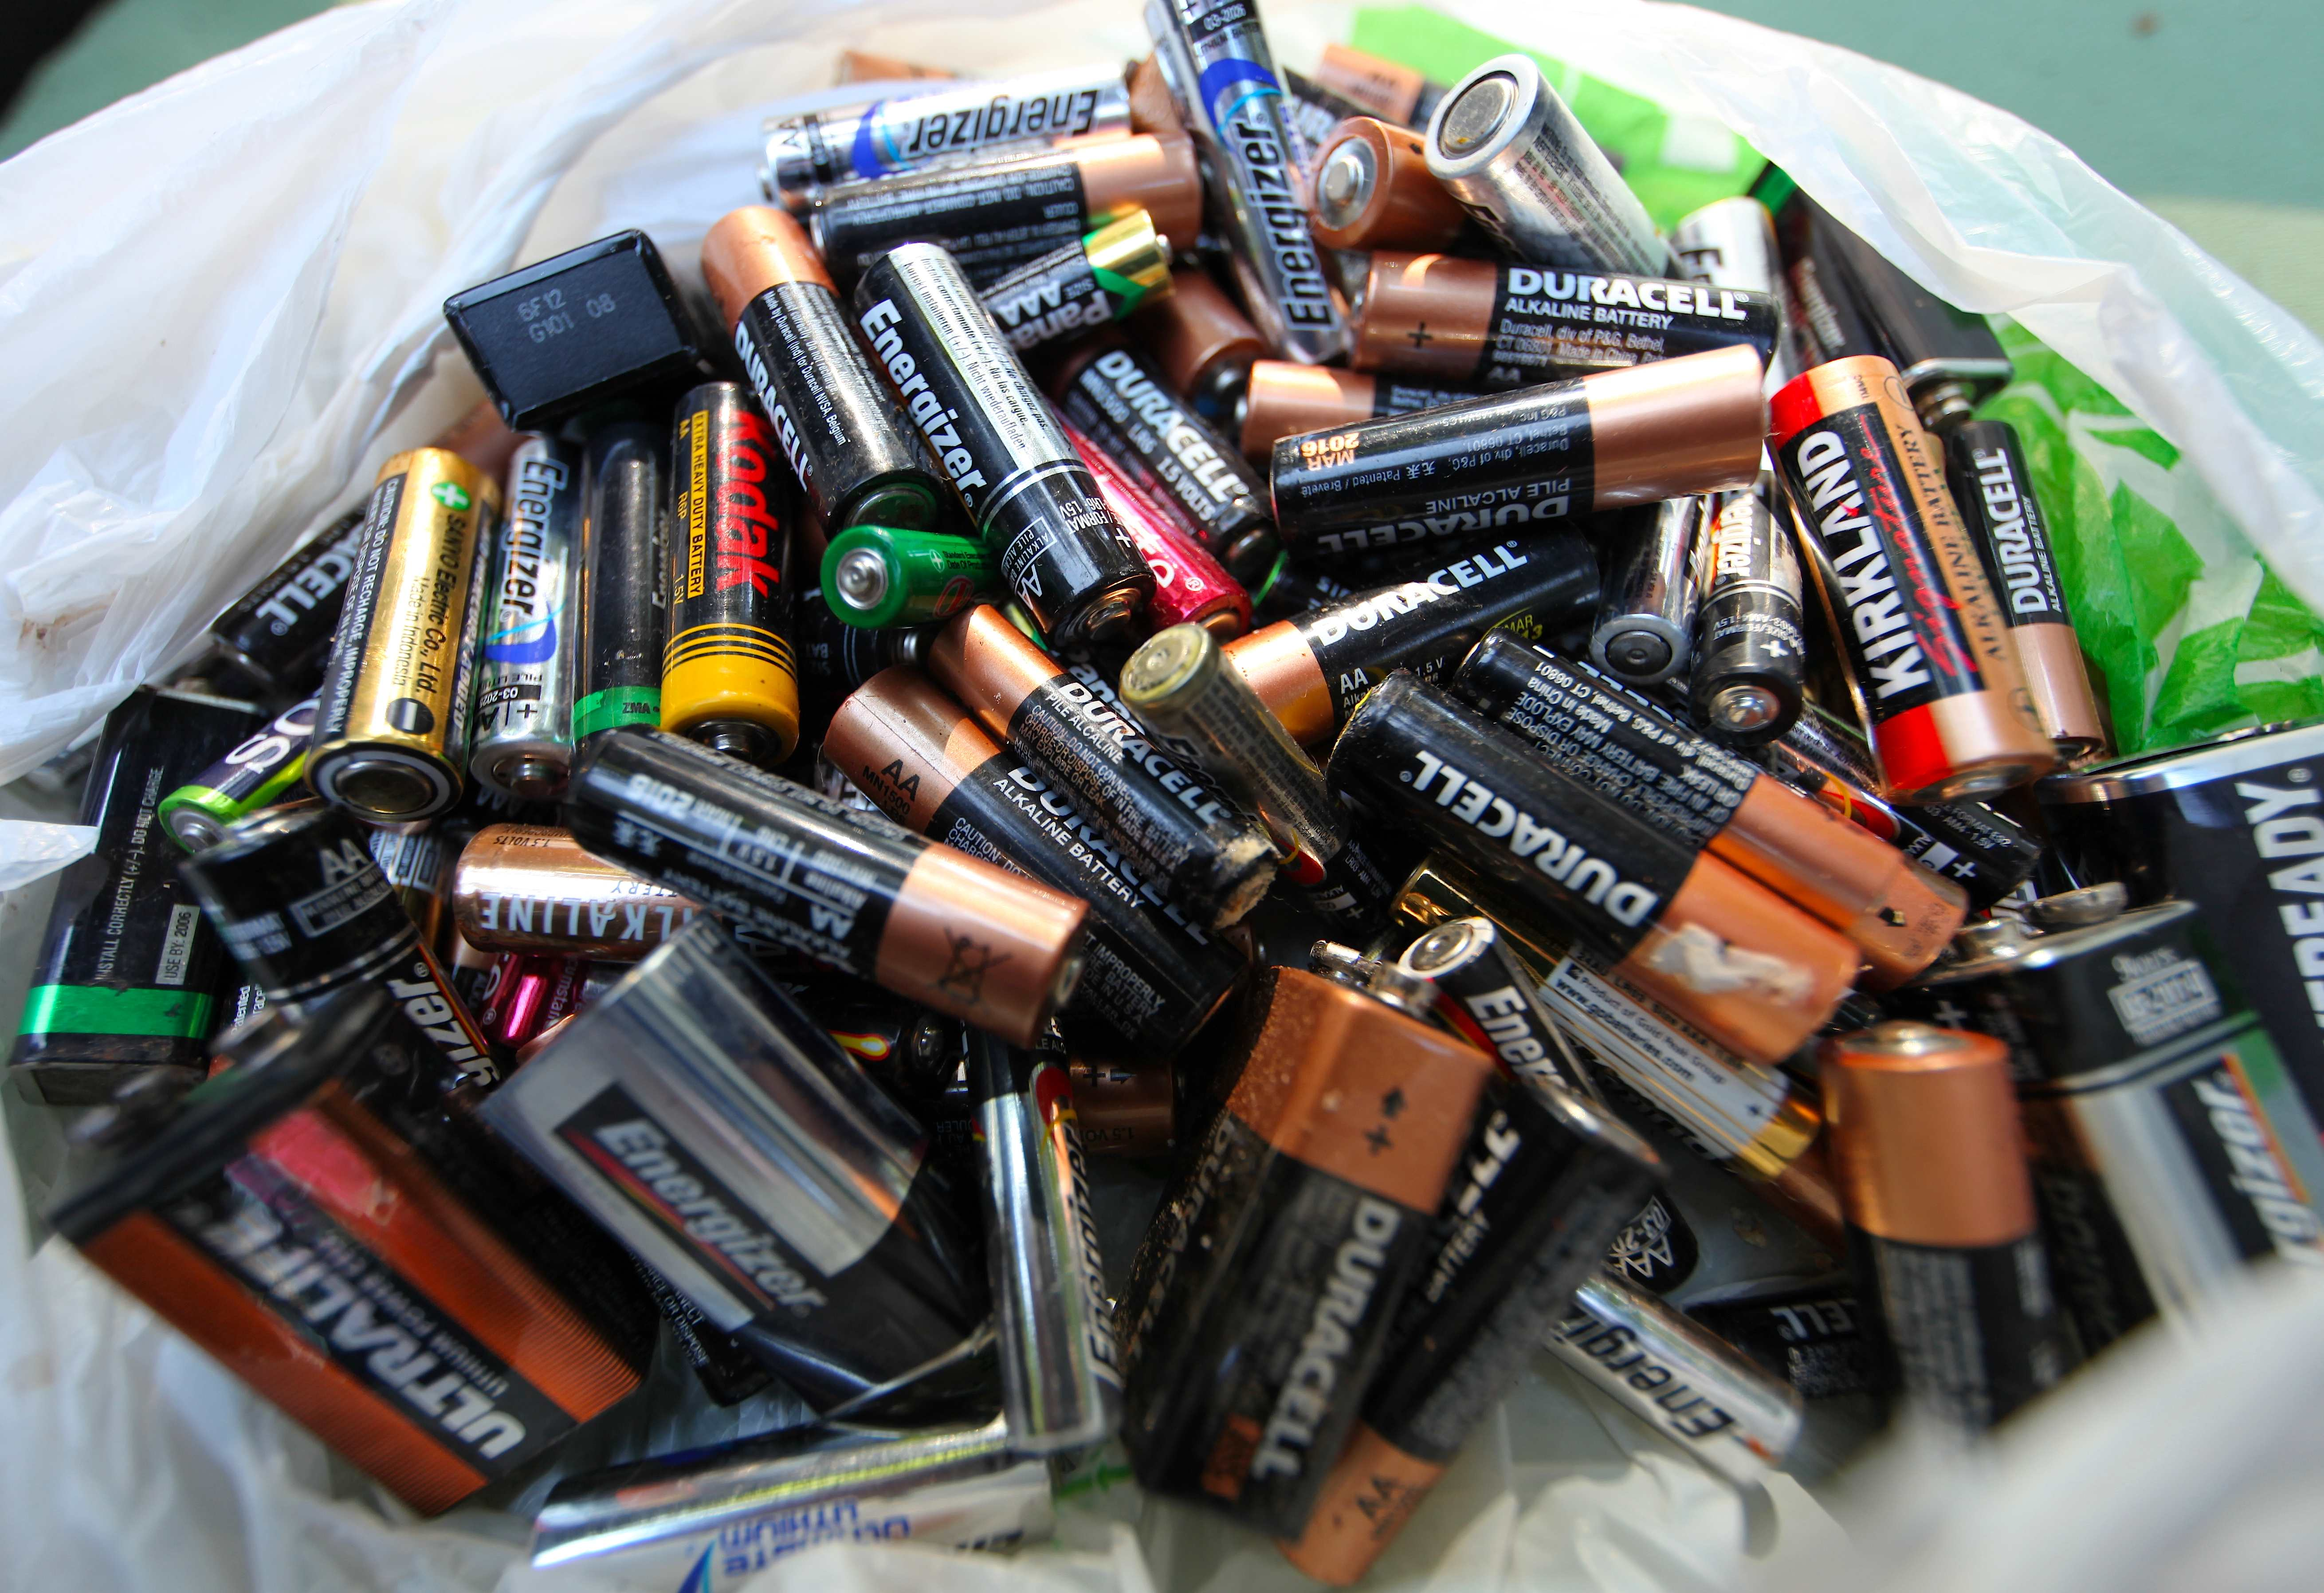 batteries-photo-c2a9-liesl-clark